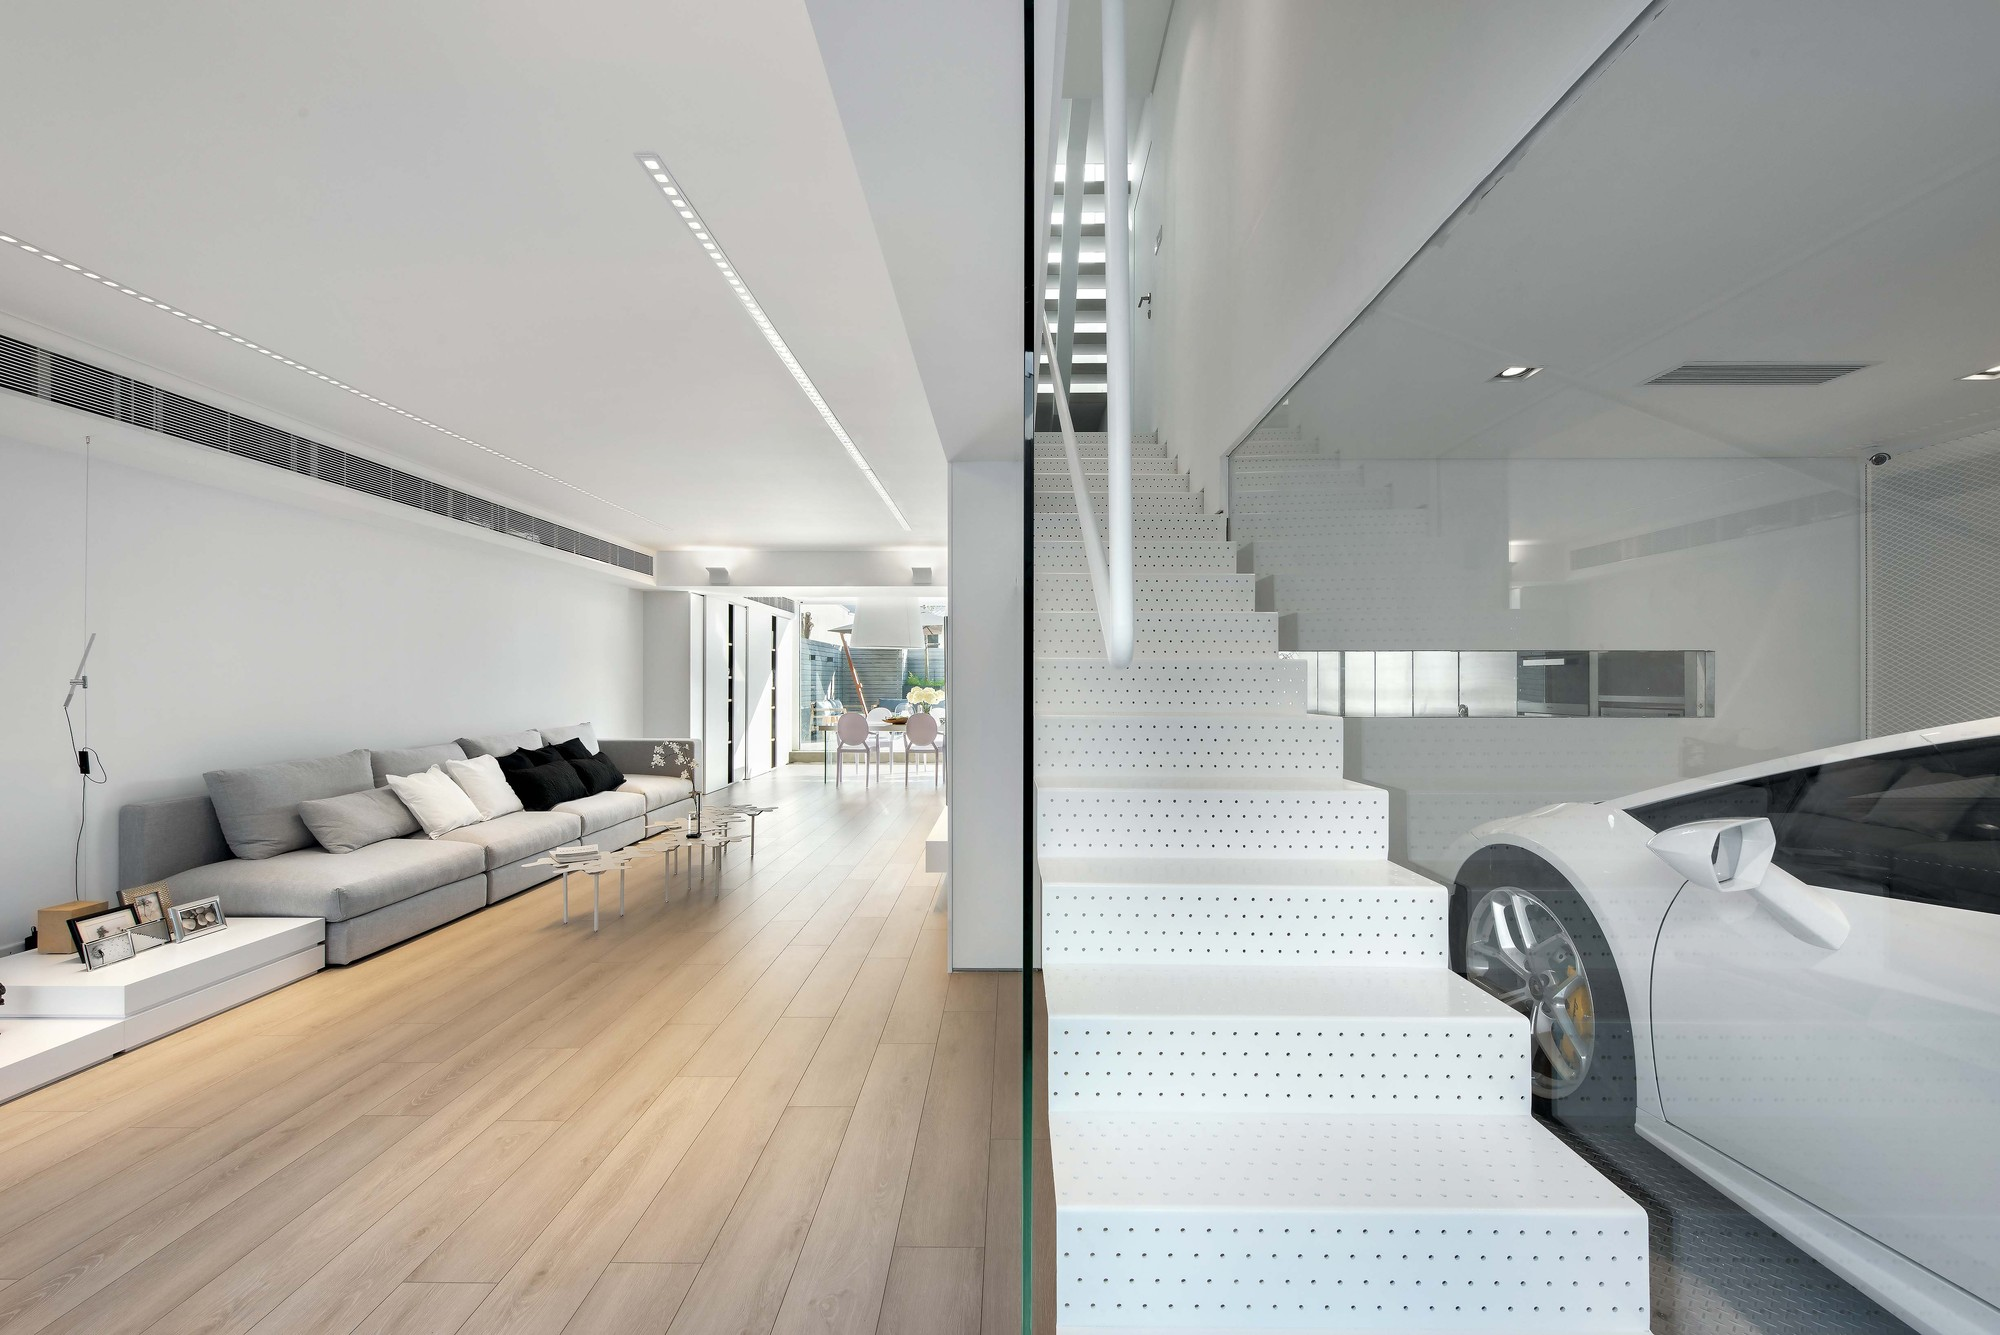 Design Interieur Architecture House In Hong Kong Millimeter Interior Design Archdaily